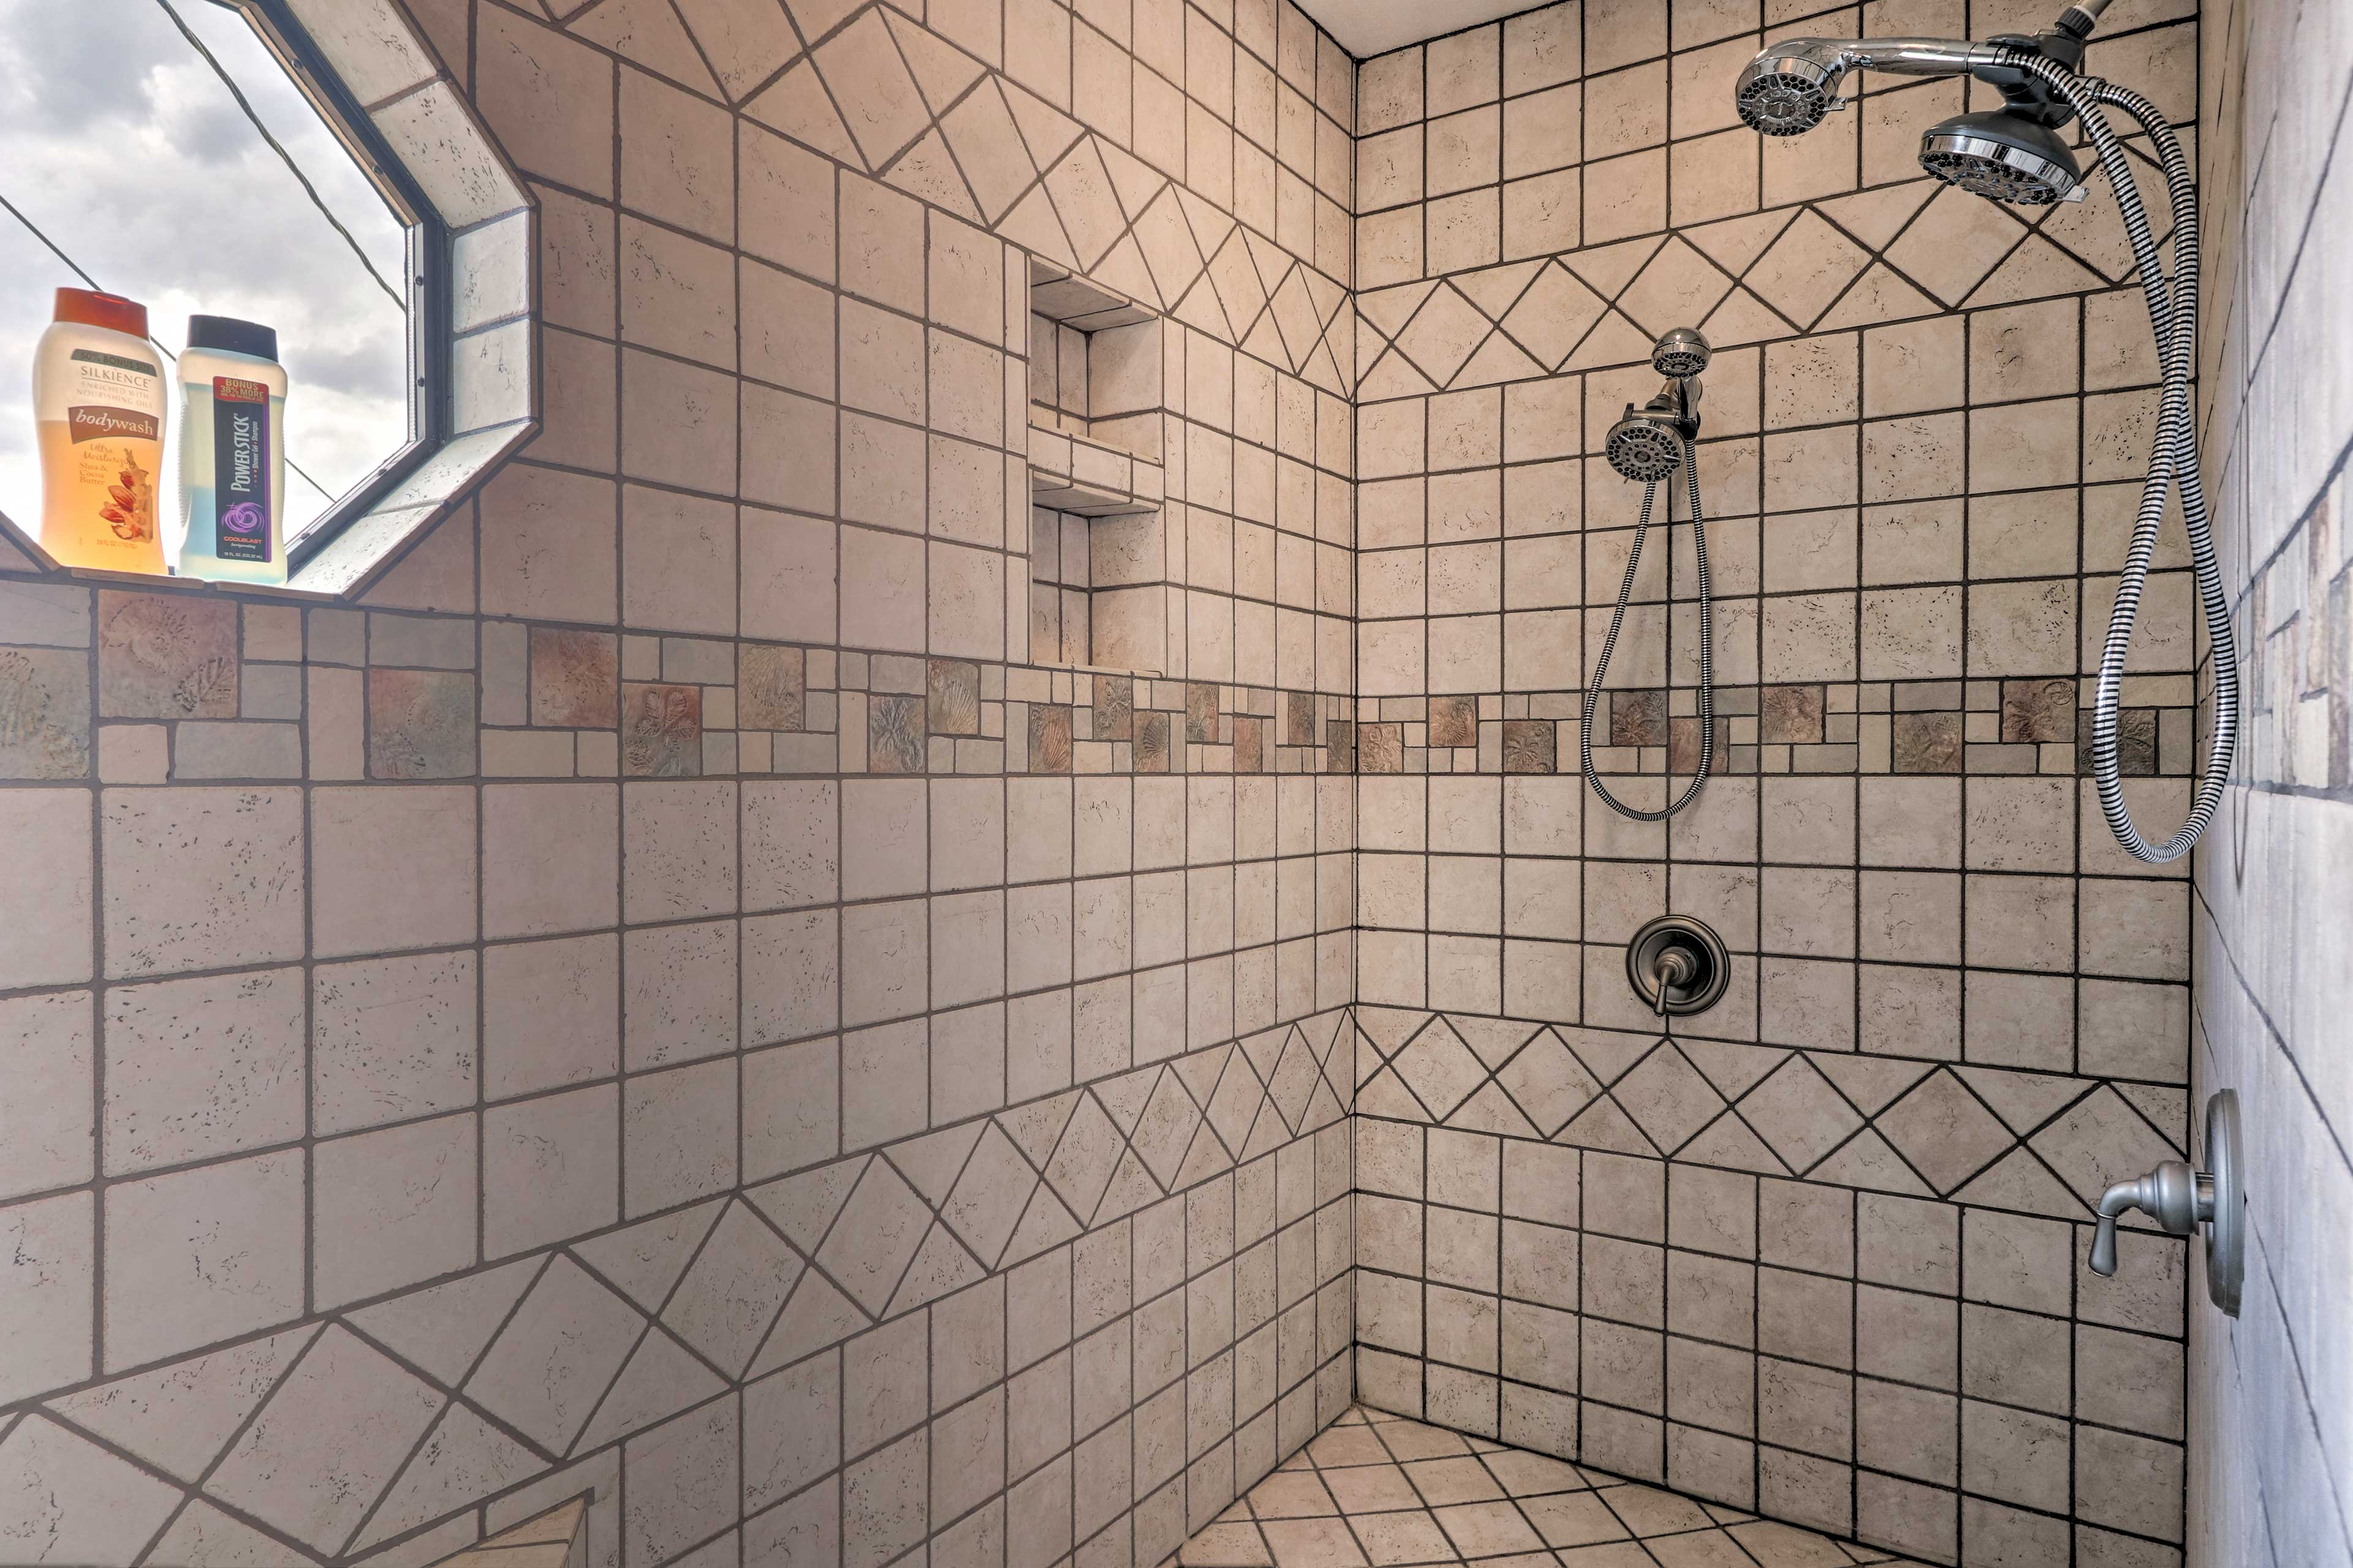 Rinse away the day in this tile-lined shower.